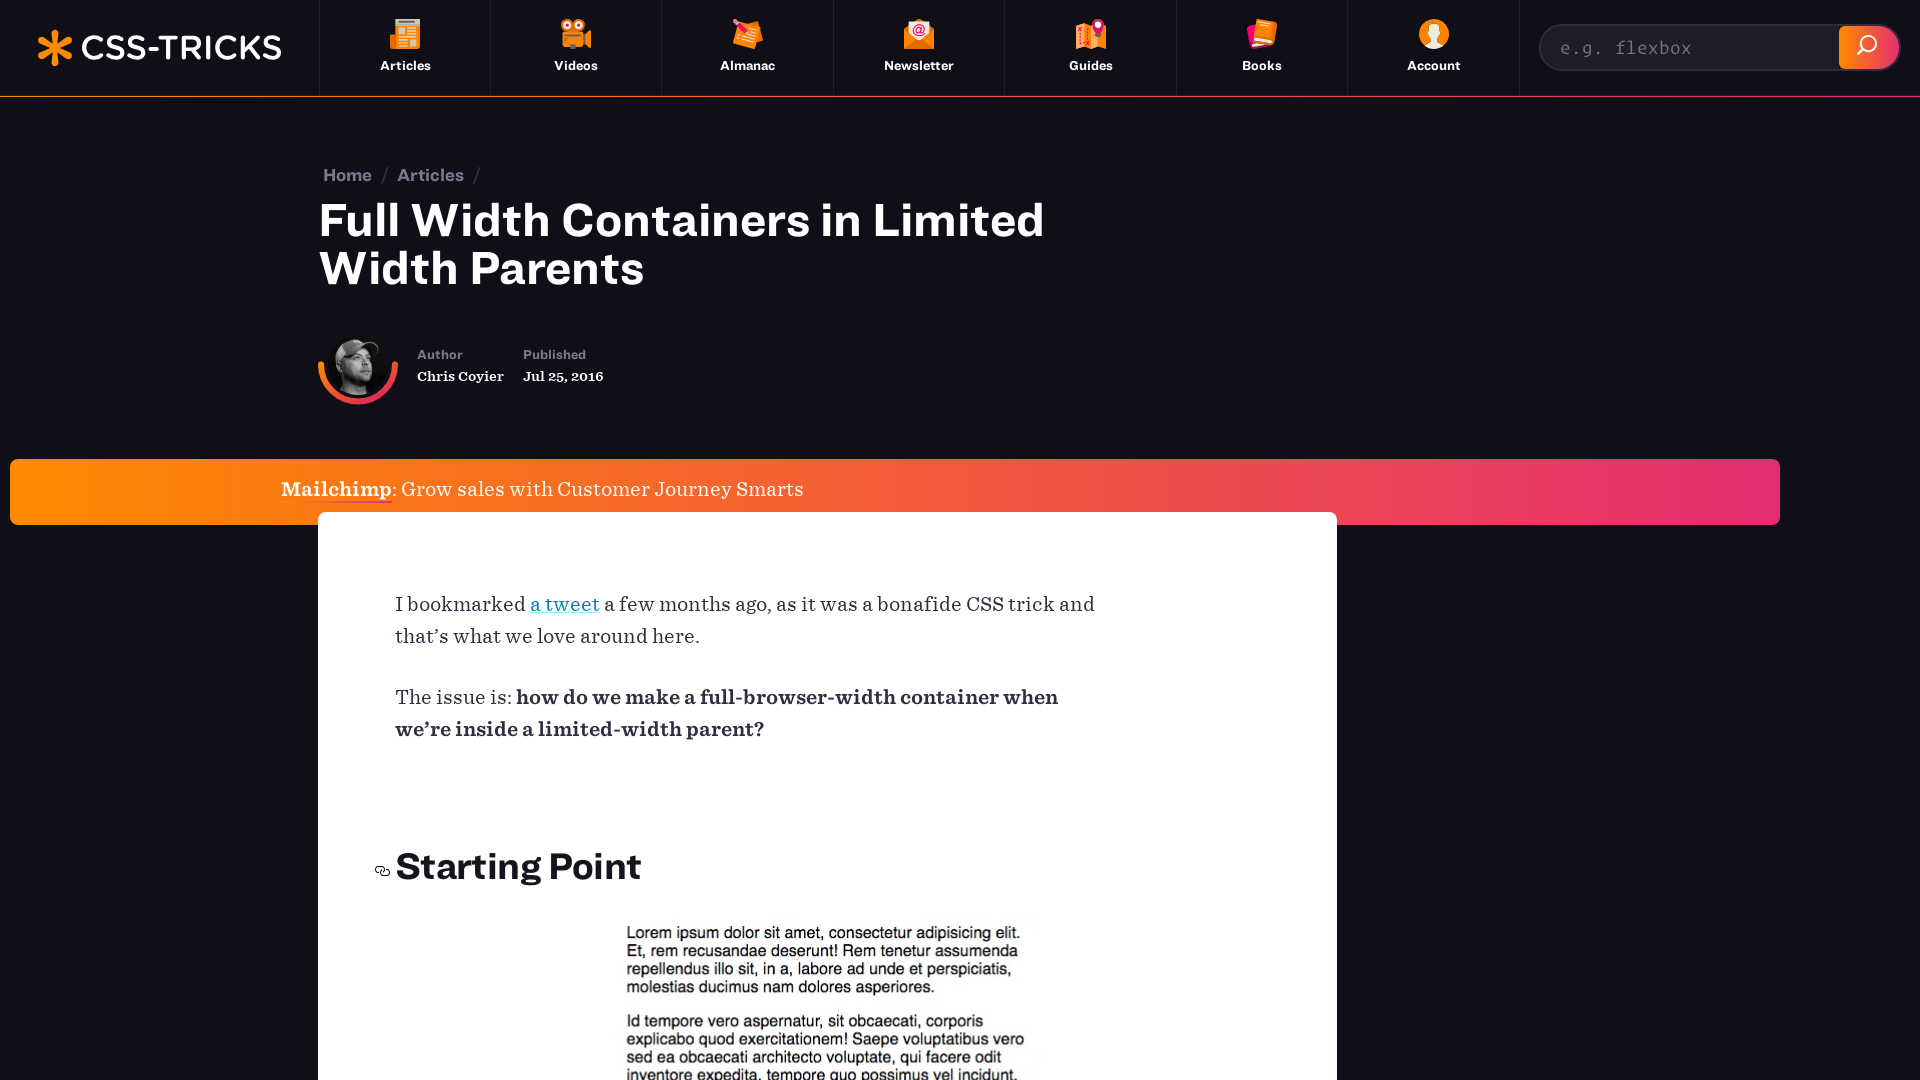 https://css-tricks.com/full-width-containers-limited-width-parents/